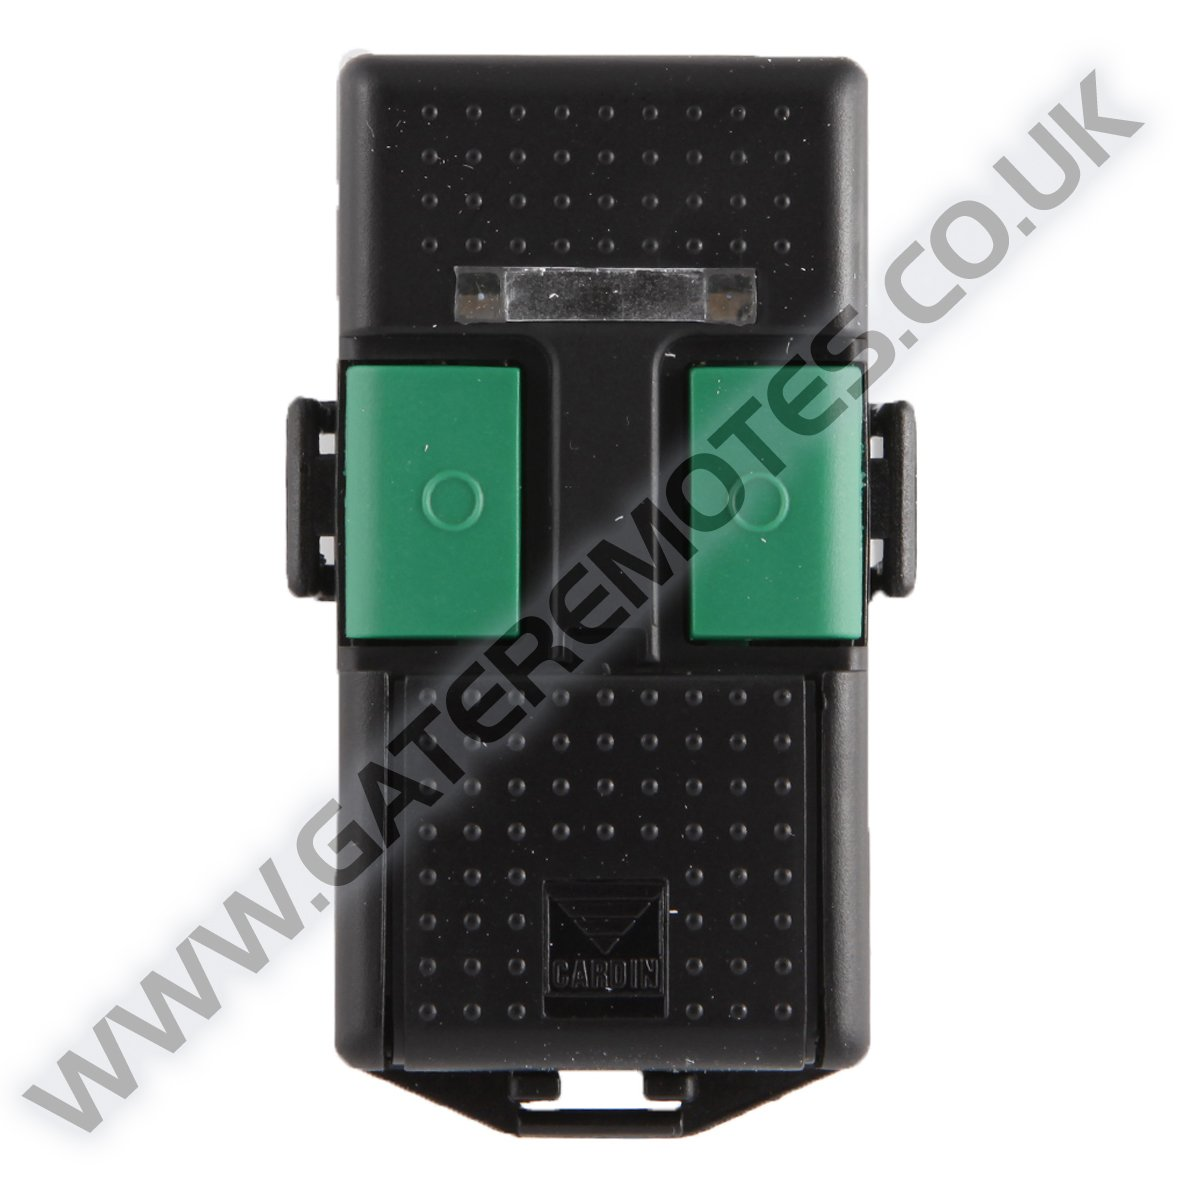 Cardin S476 2 Channel Gate Remote Gateremotes Co Uk